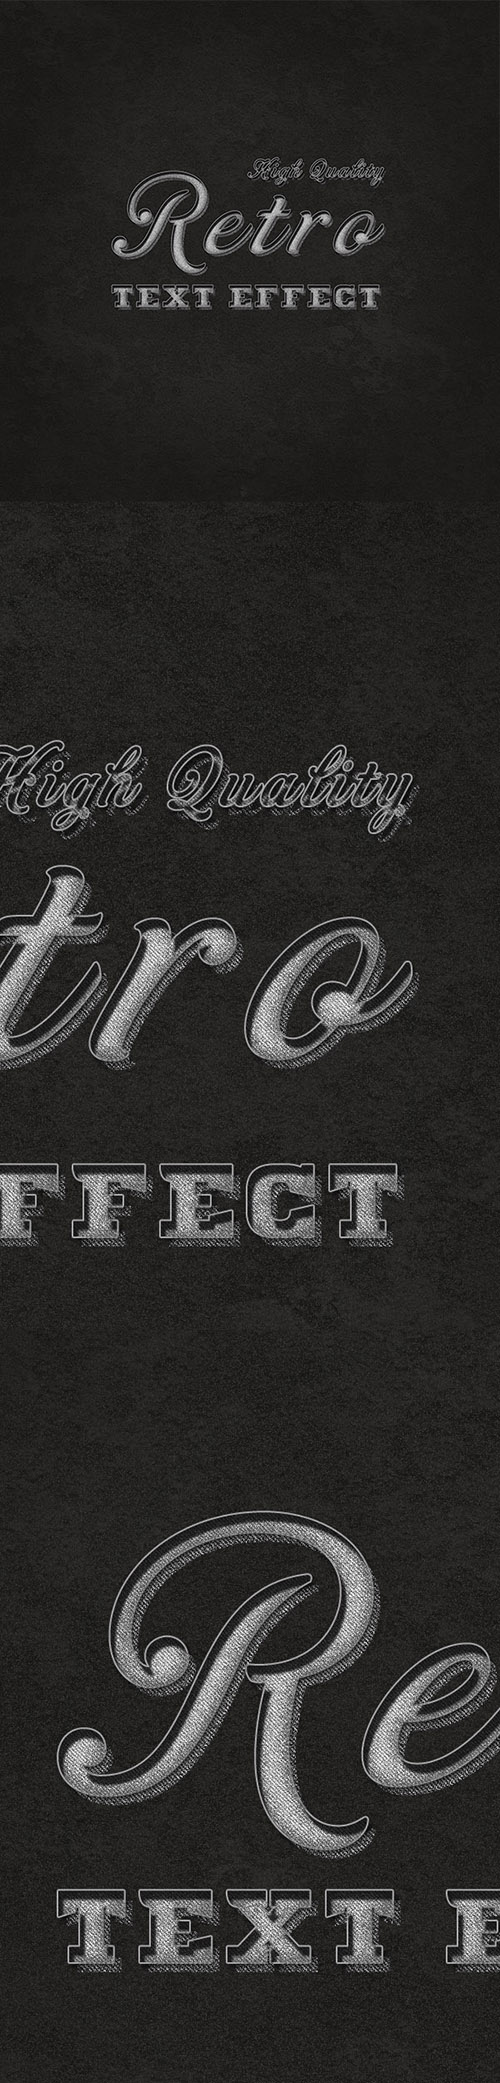 PSD Text Effect - Retro & Vintage v3